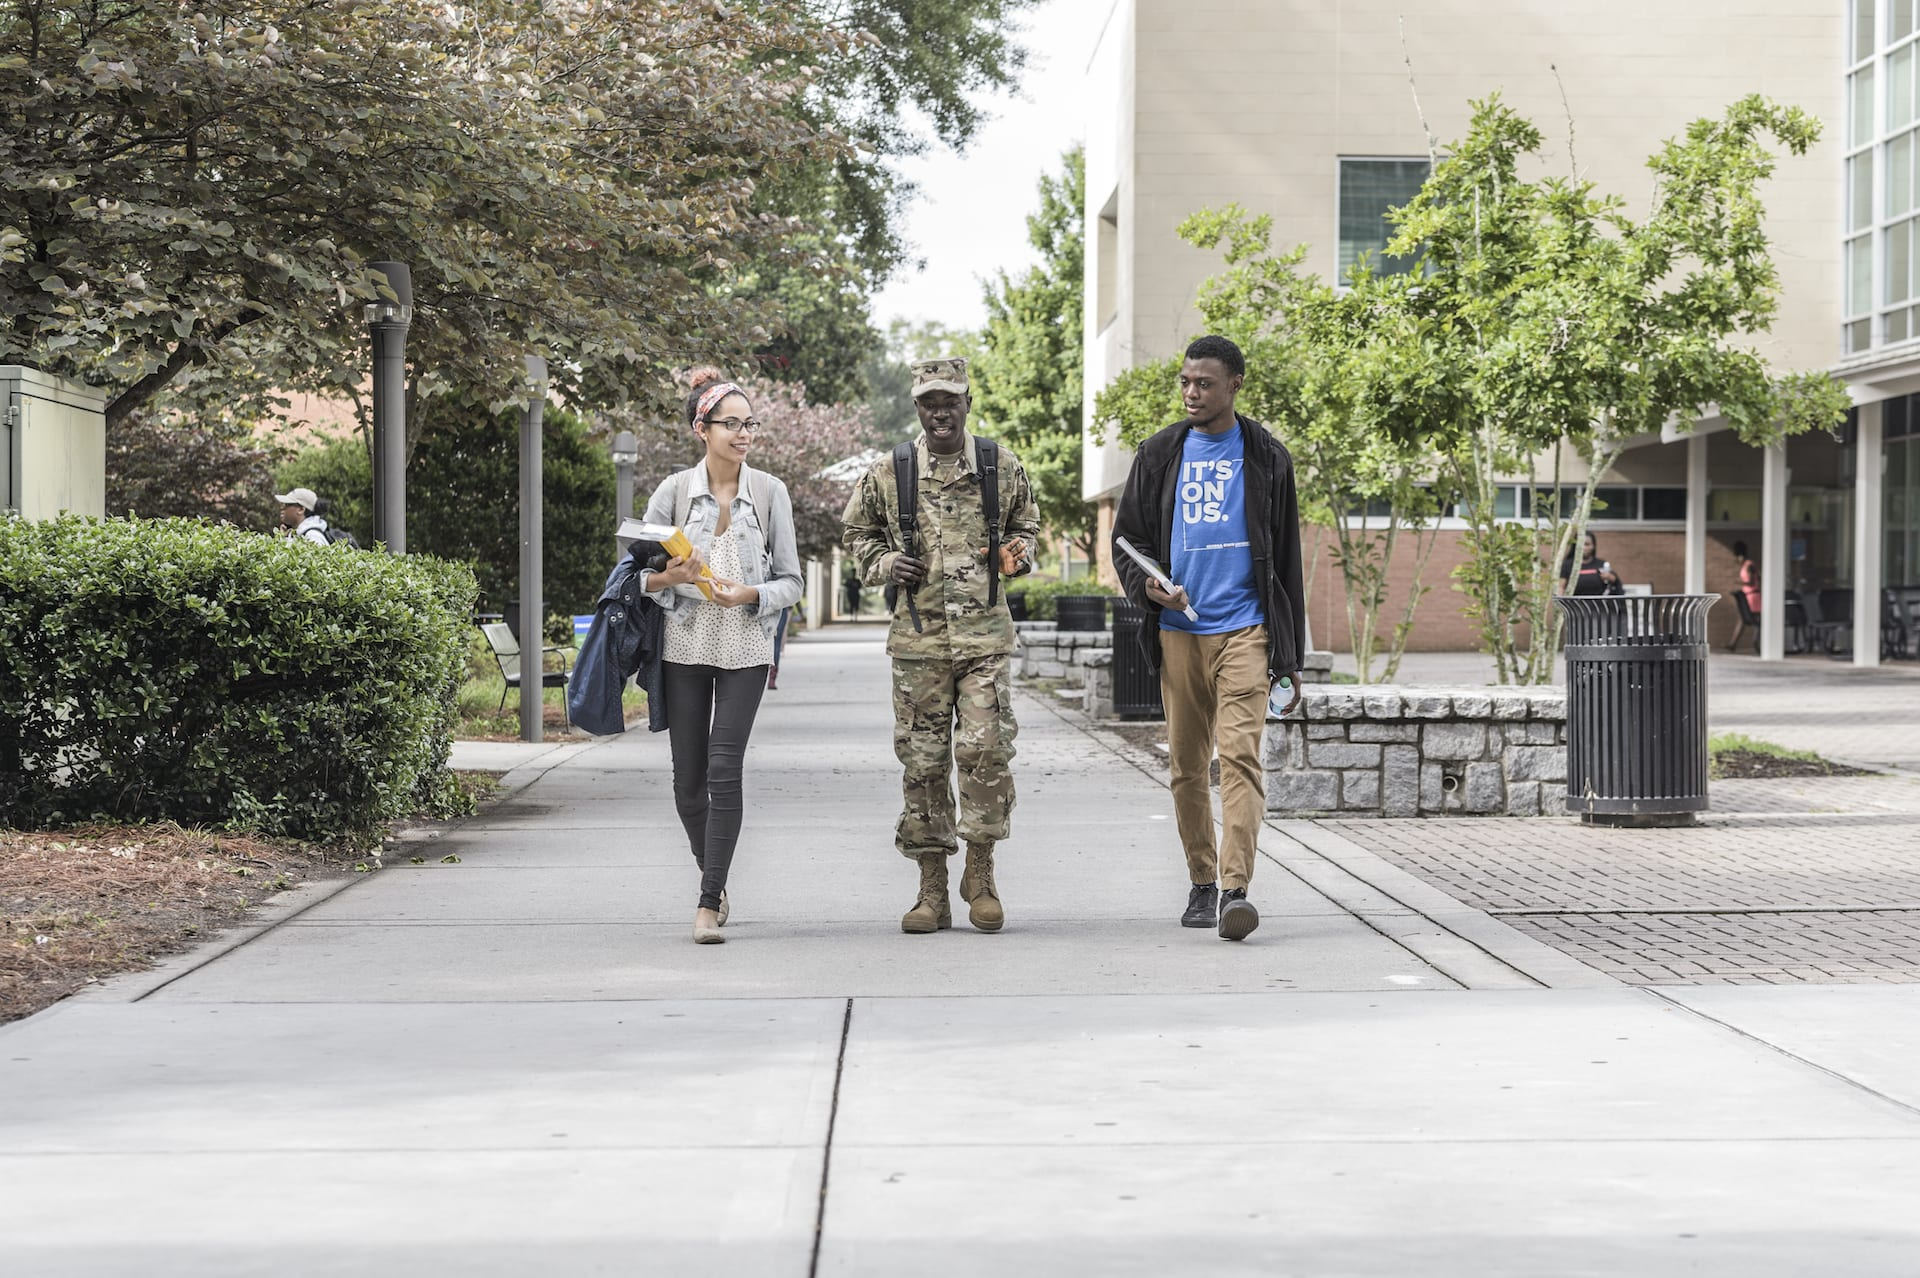 Two students and a student in military uniform walking down sidewalk